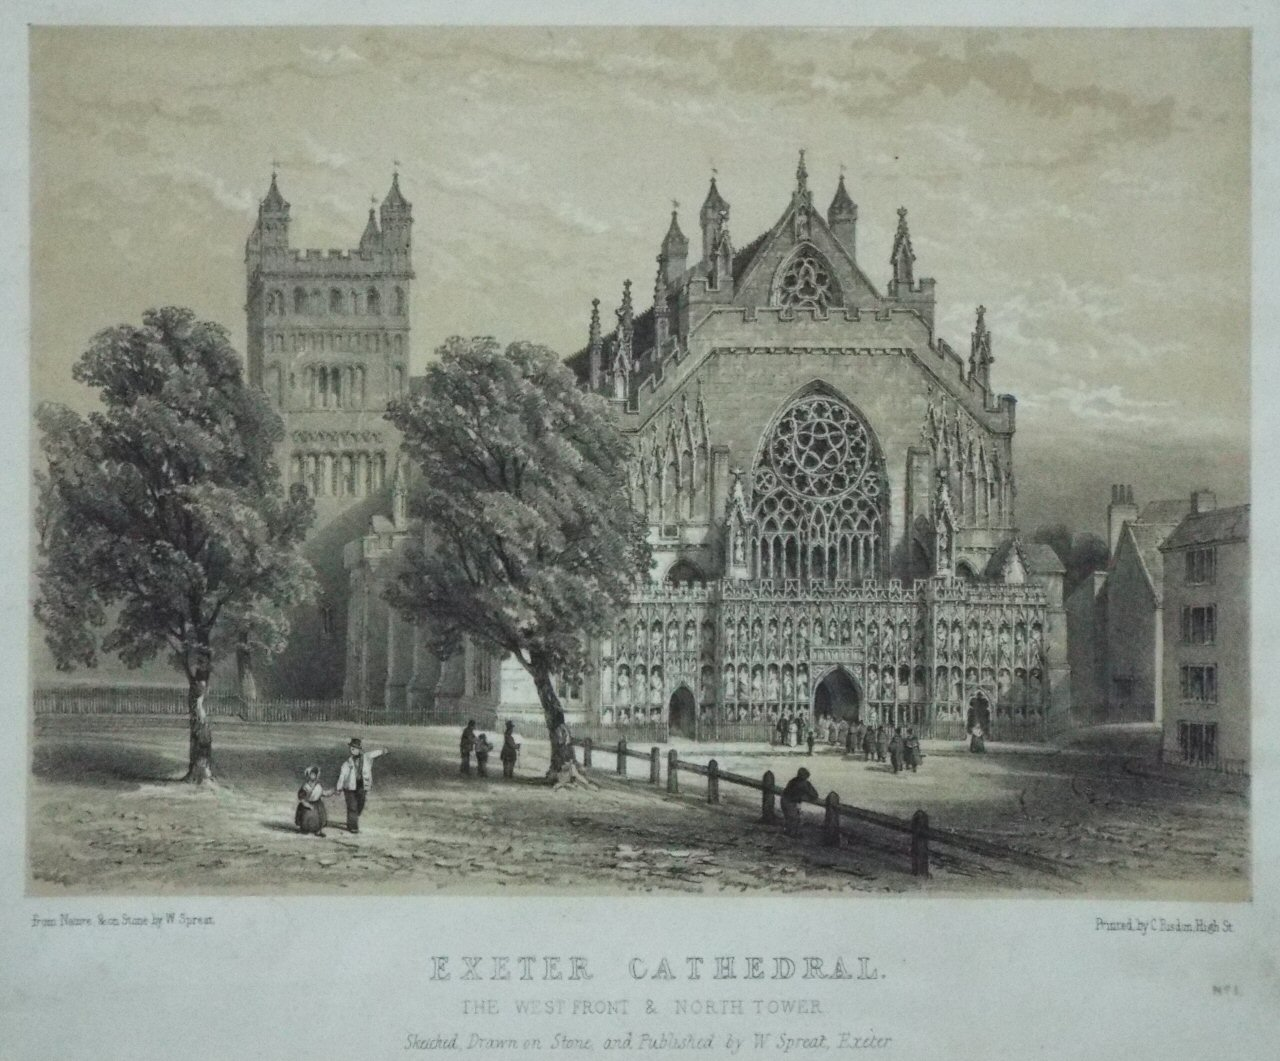 Lithograph - Exeter Cathedral. The West Front & North Tower. - Spreat